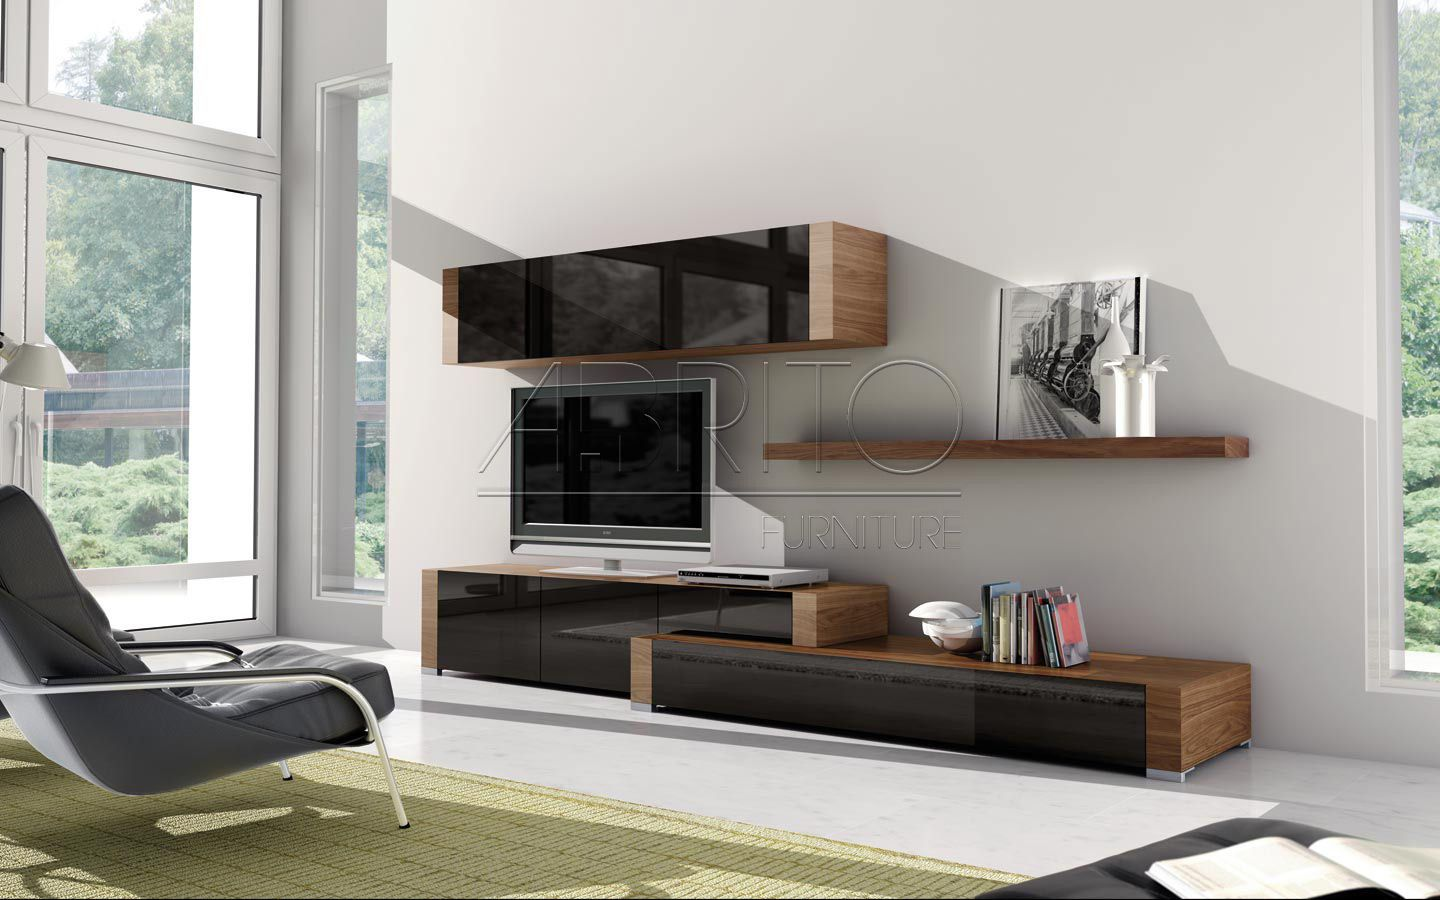 ensemble mural tv contemporain en verre en bois nagare 50c a brito mueble tv atp. Black Bedroom Furniture Sets. Home Design Ideas